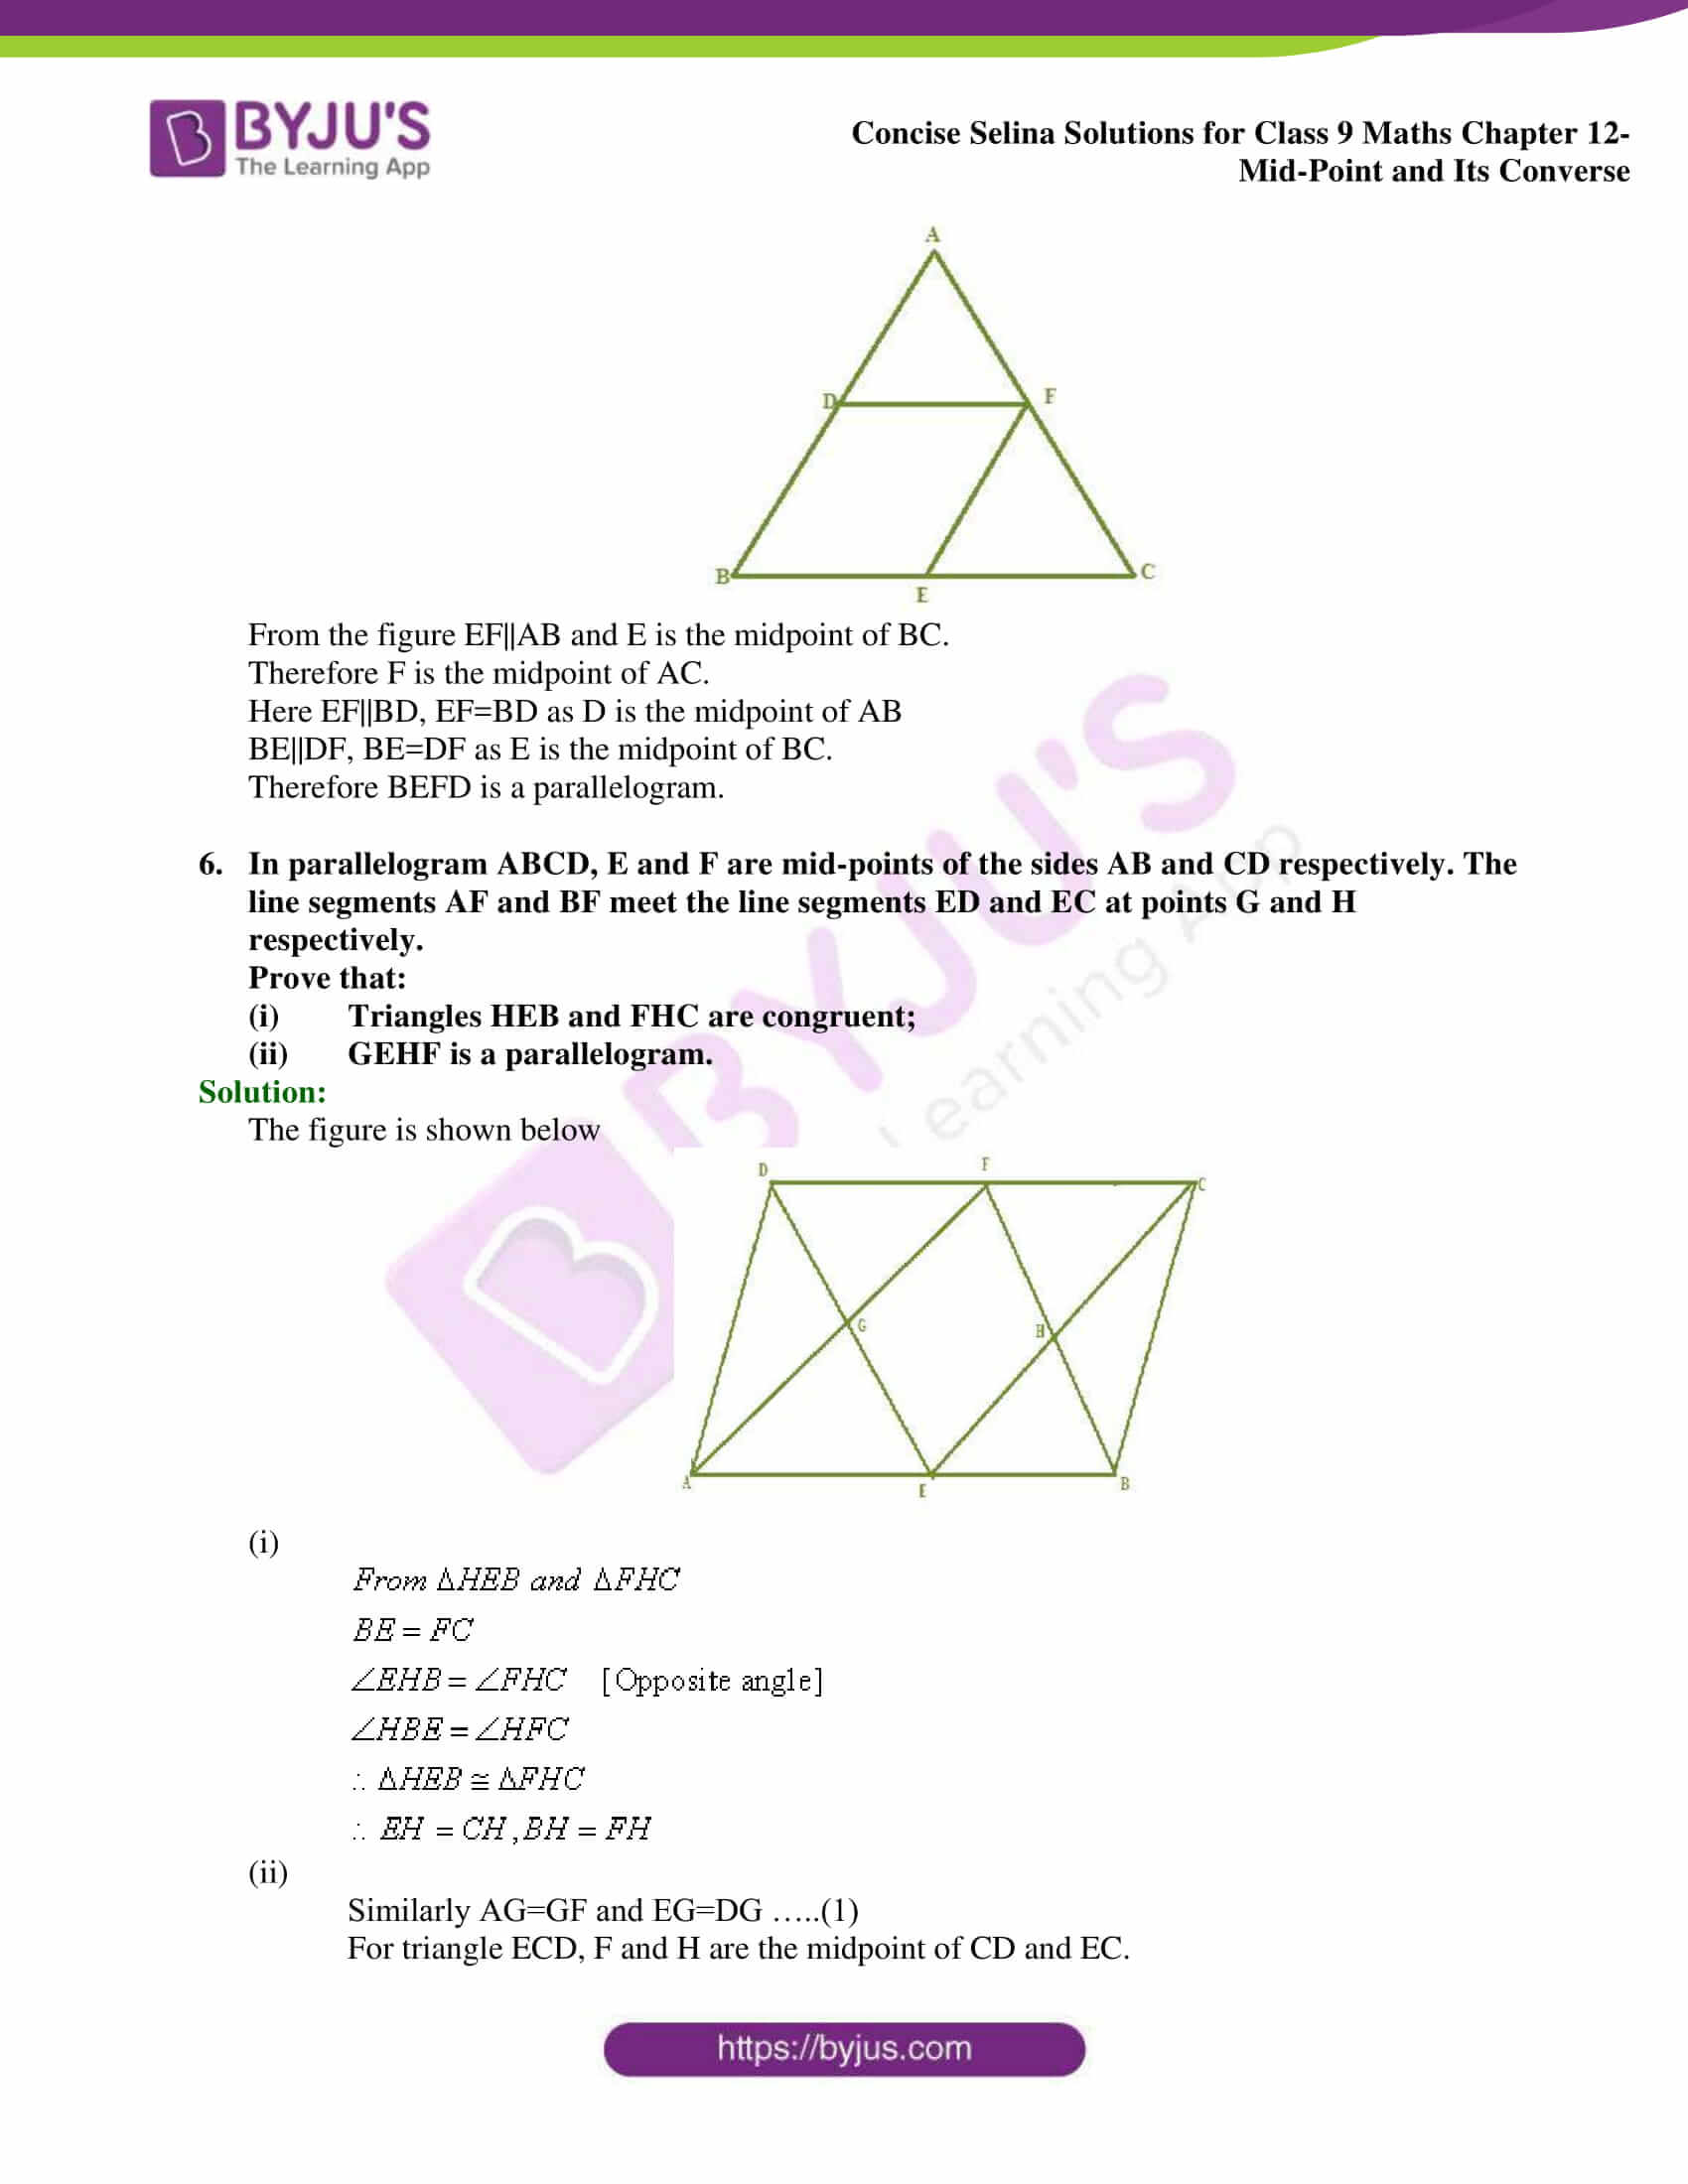 selina Solutions for Class 9 Maths Chapter 12 part 16